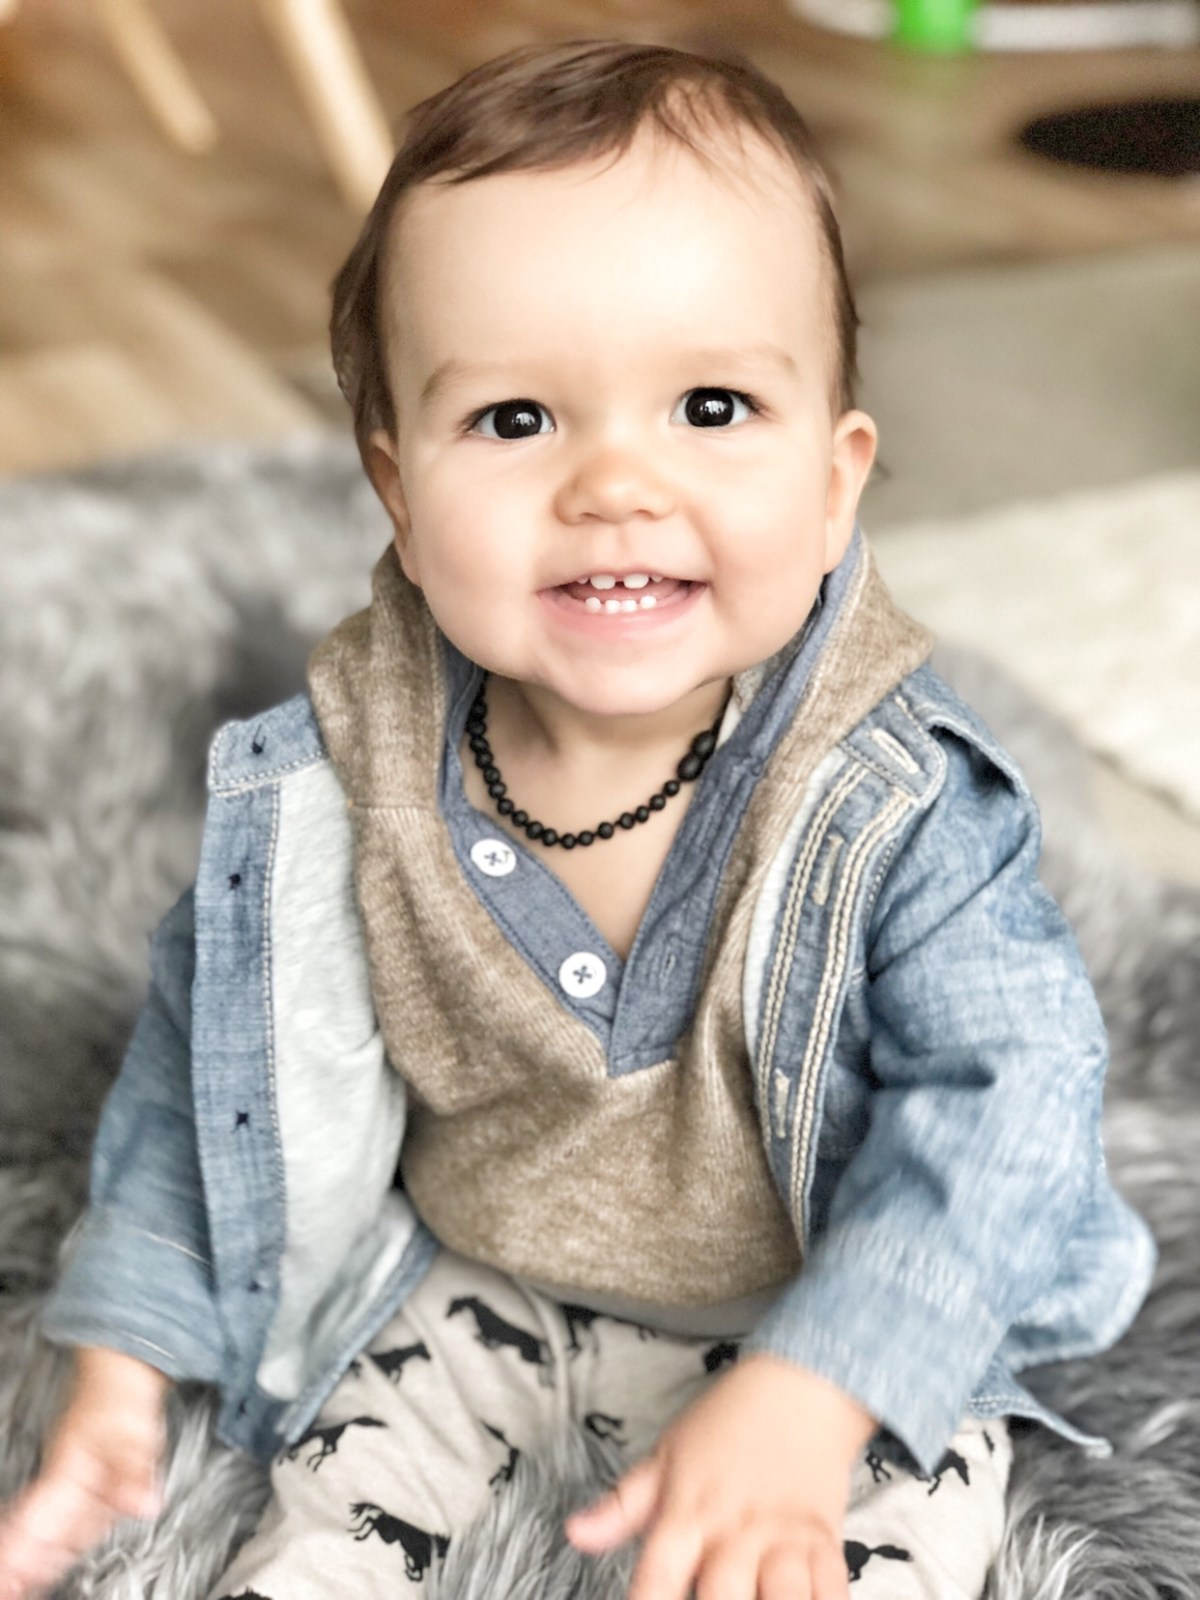 from baby to toddler - 1 year update